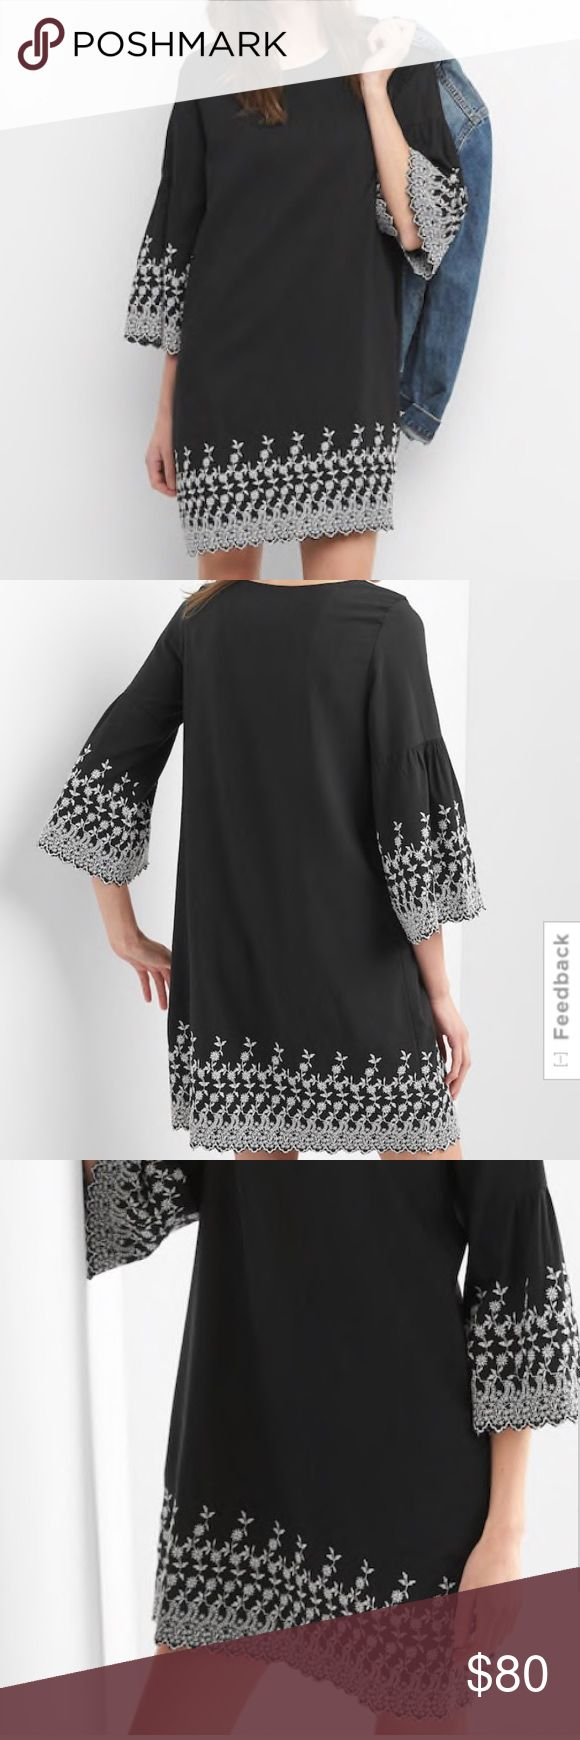 NWT Gap embroidered bell-sleeve dress NWT Gap embroidered bell-sleeve dress, size: 2 petite, color: true black, with white embroidery. 3/4-length sleeves, scalloped hem and sleeves.  Beautiful embroidered detail. 60% rayon, 40% viscose, machine washable. GAP Dresses